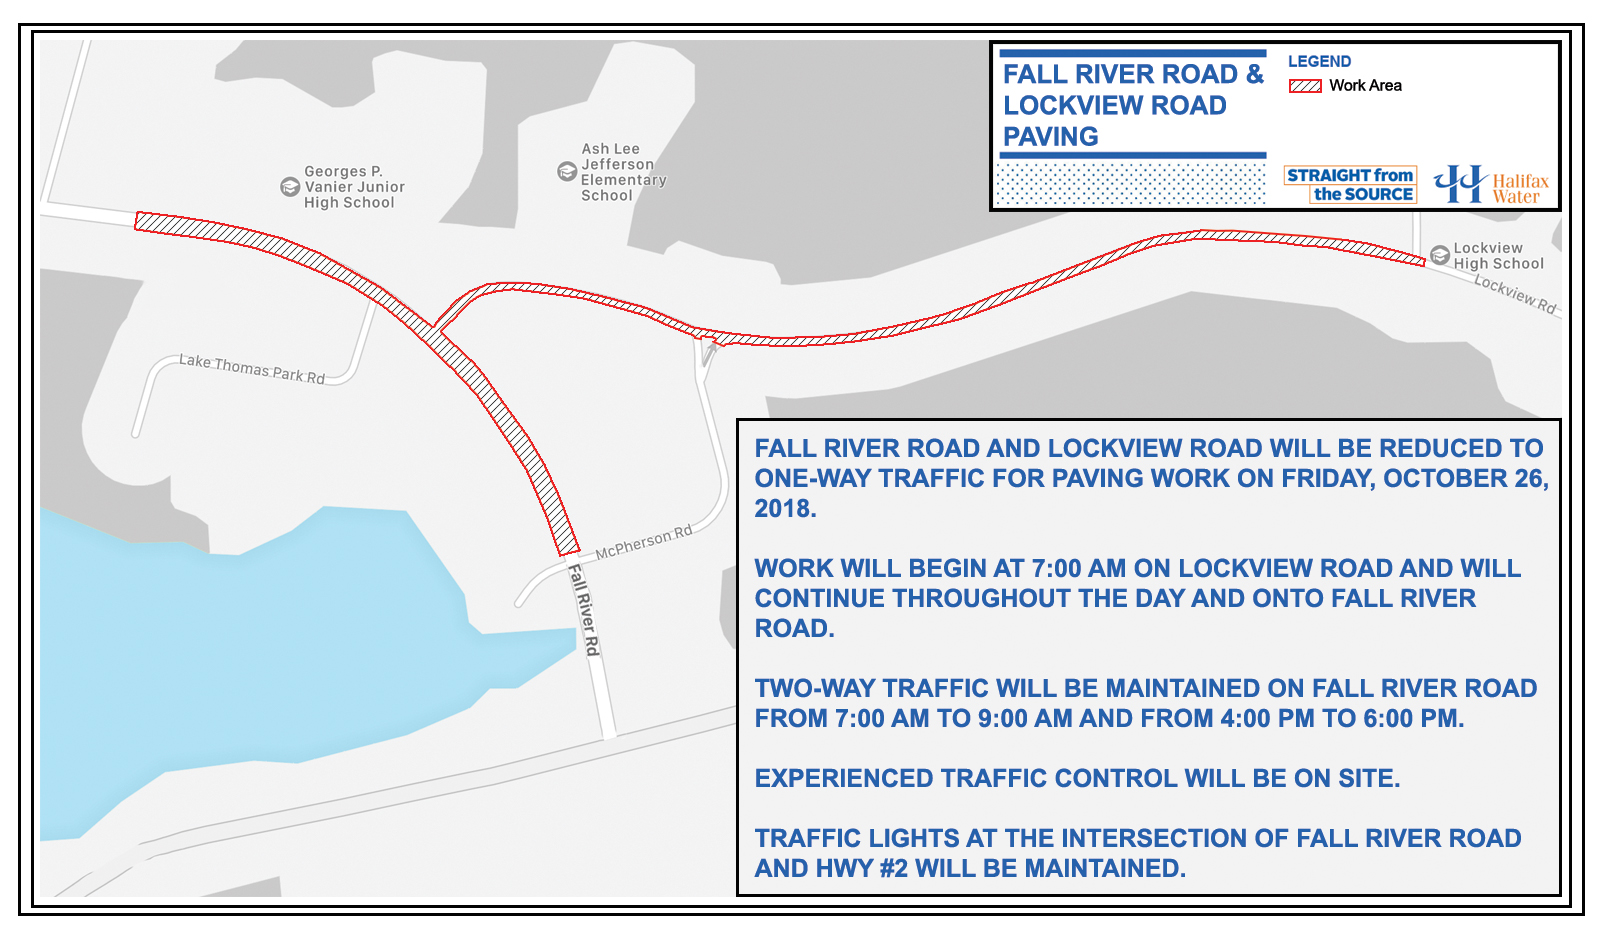 Map of the work area on Fall River Road and Lockview Road